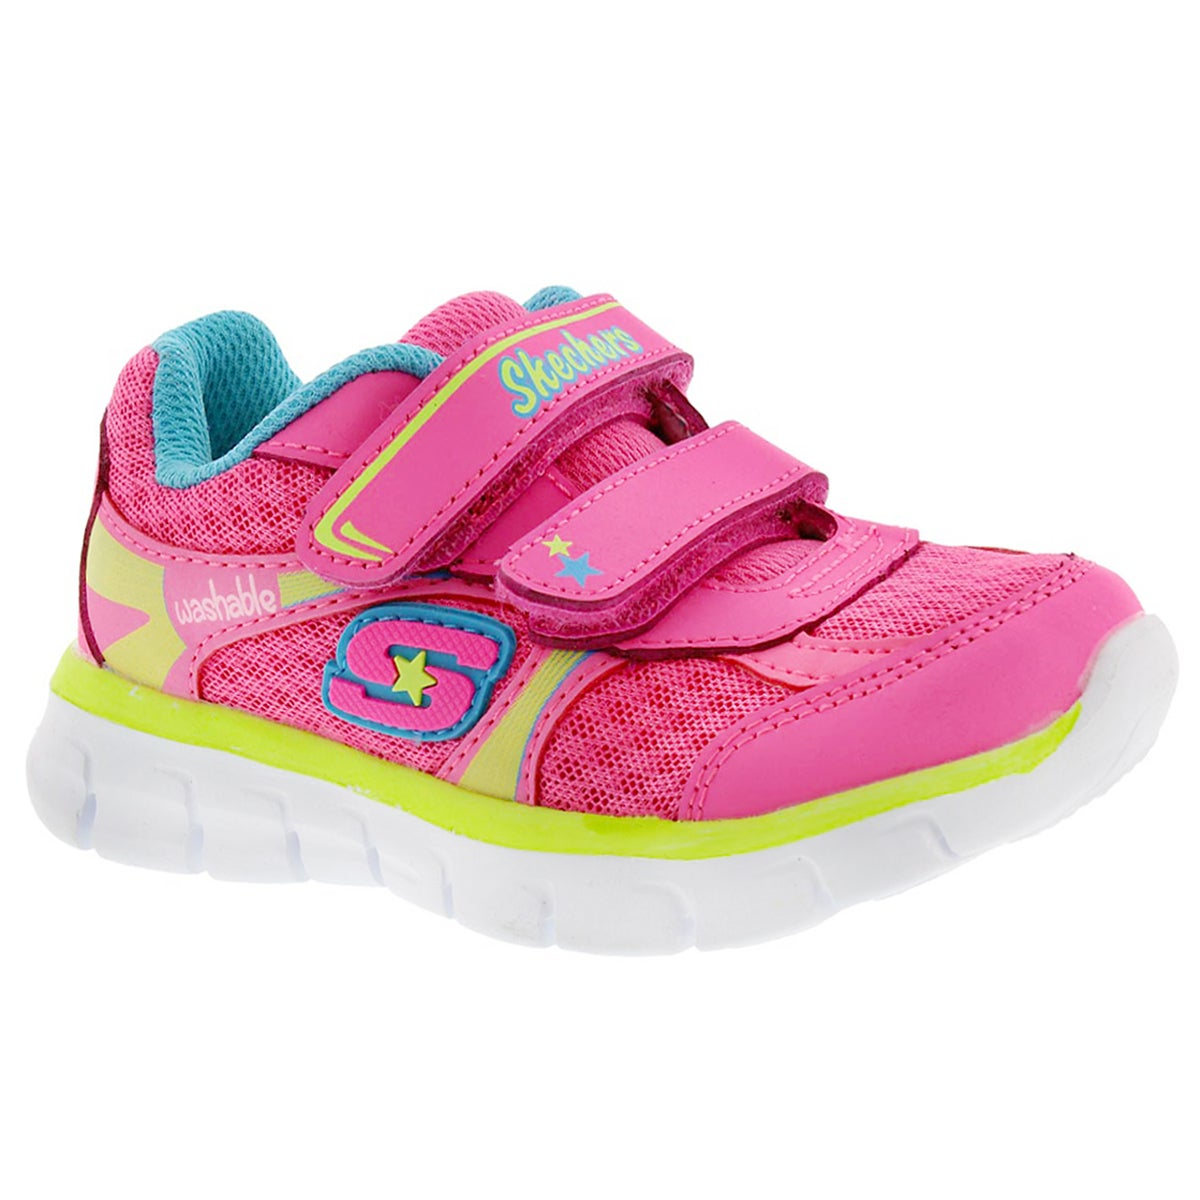 Infants' LIL SOFTY 2 strap pink sneakers